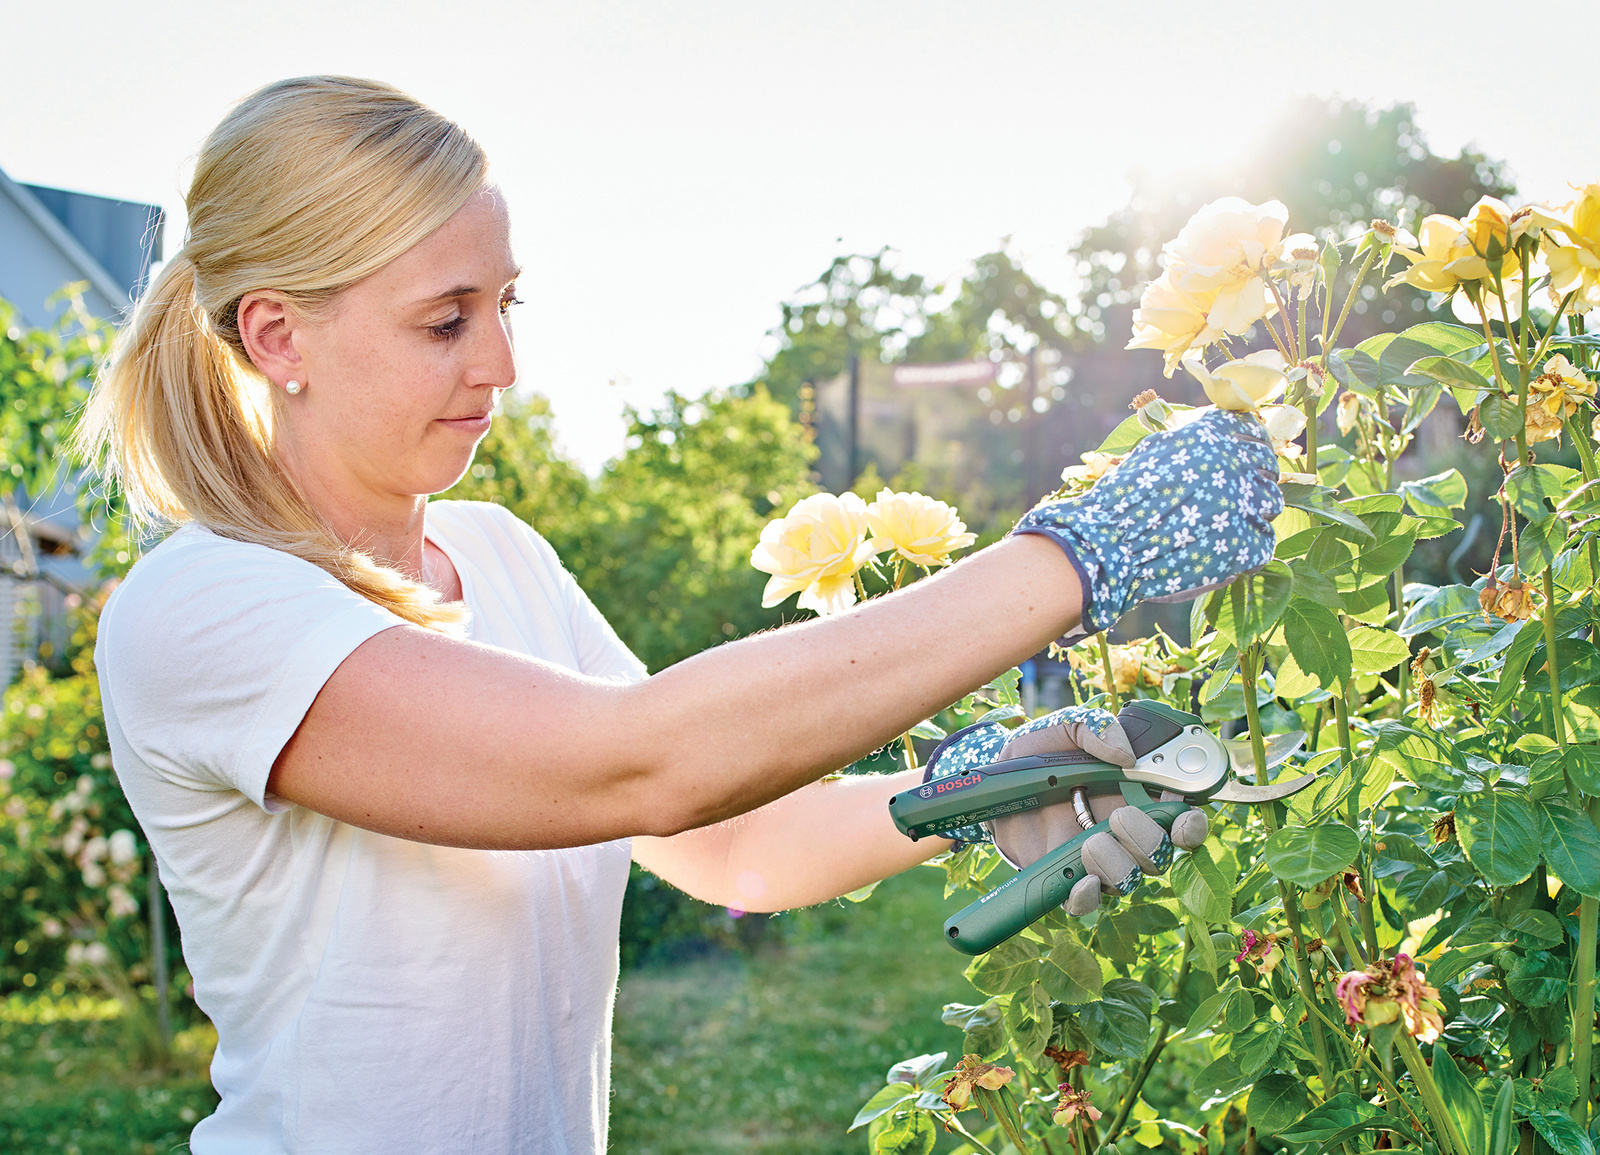 Cuts cleanly into any material, from fibrous to thick: Bosch EasyPrune power-assisted cordless secateurs